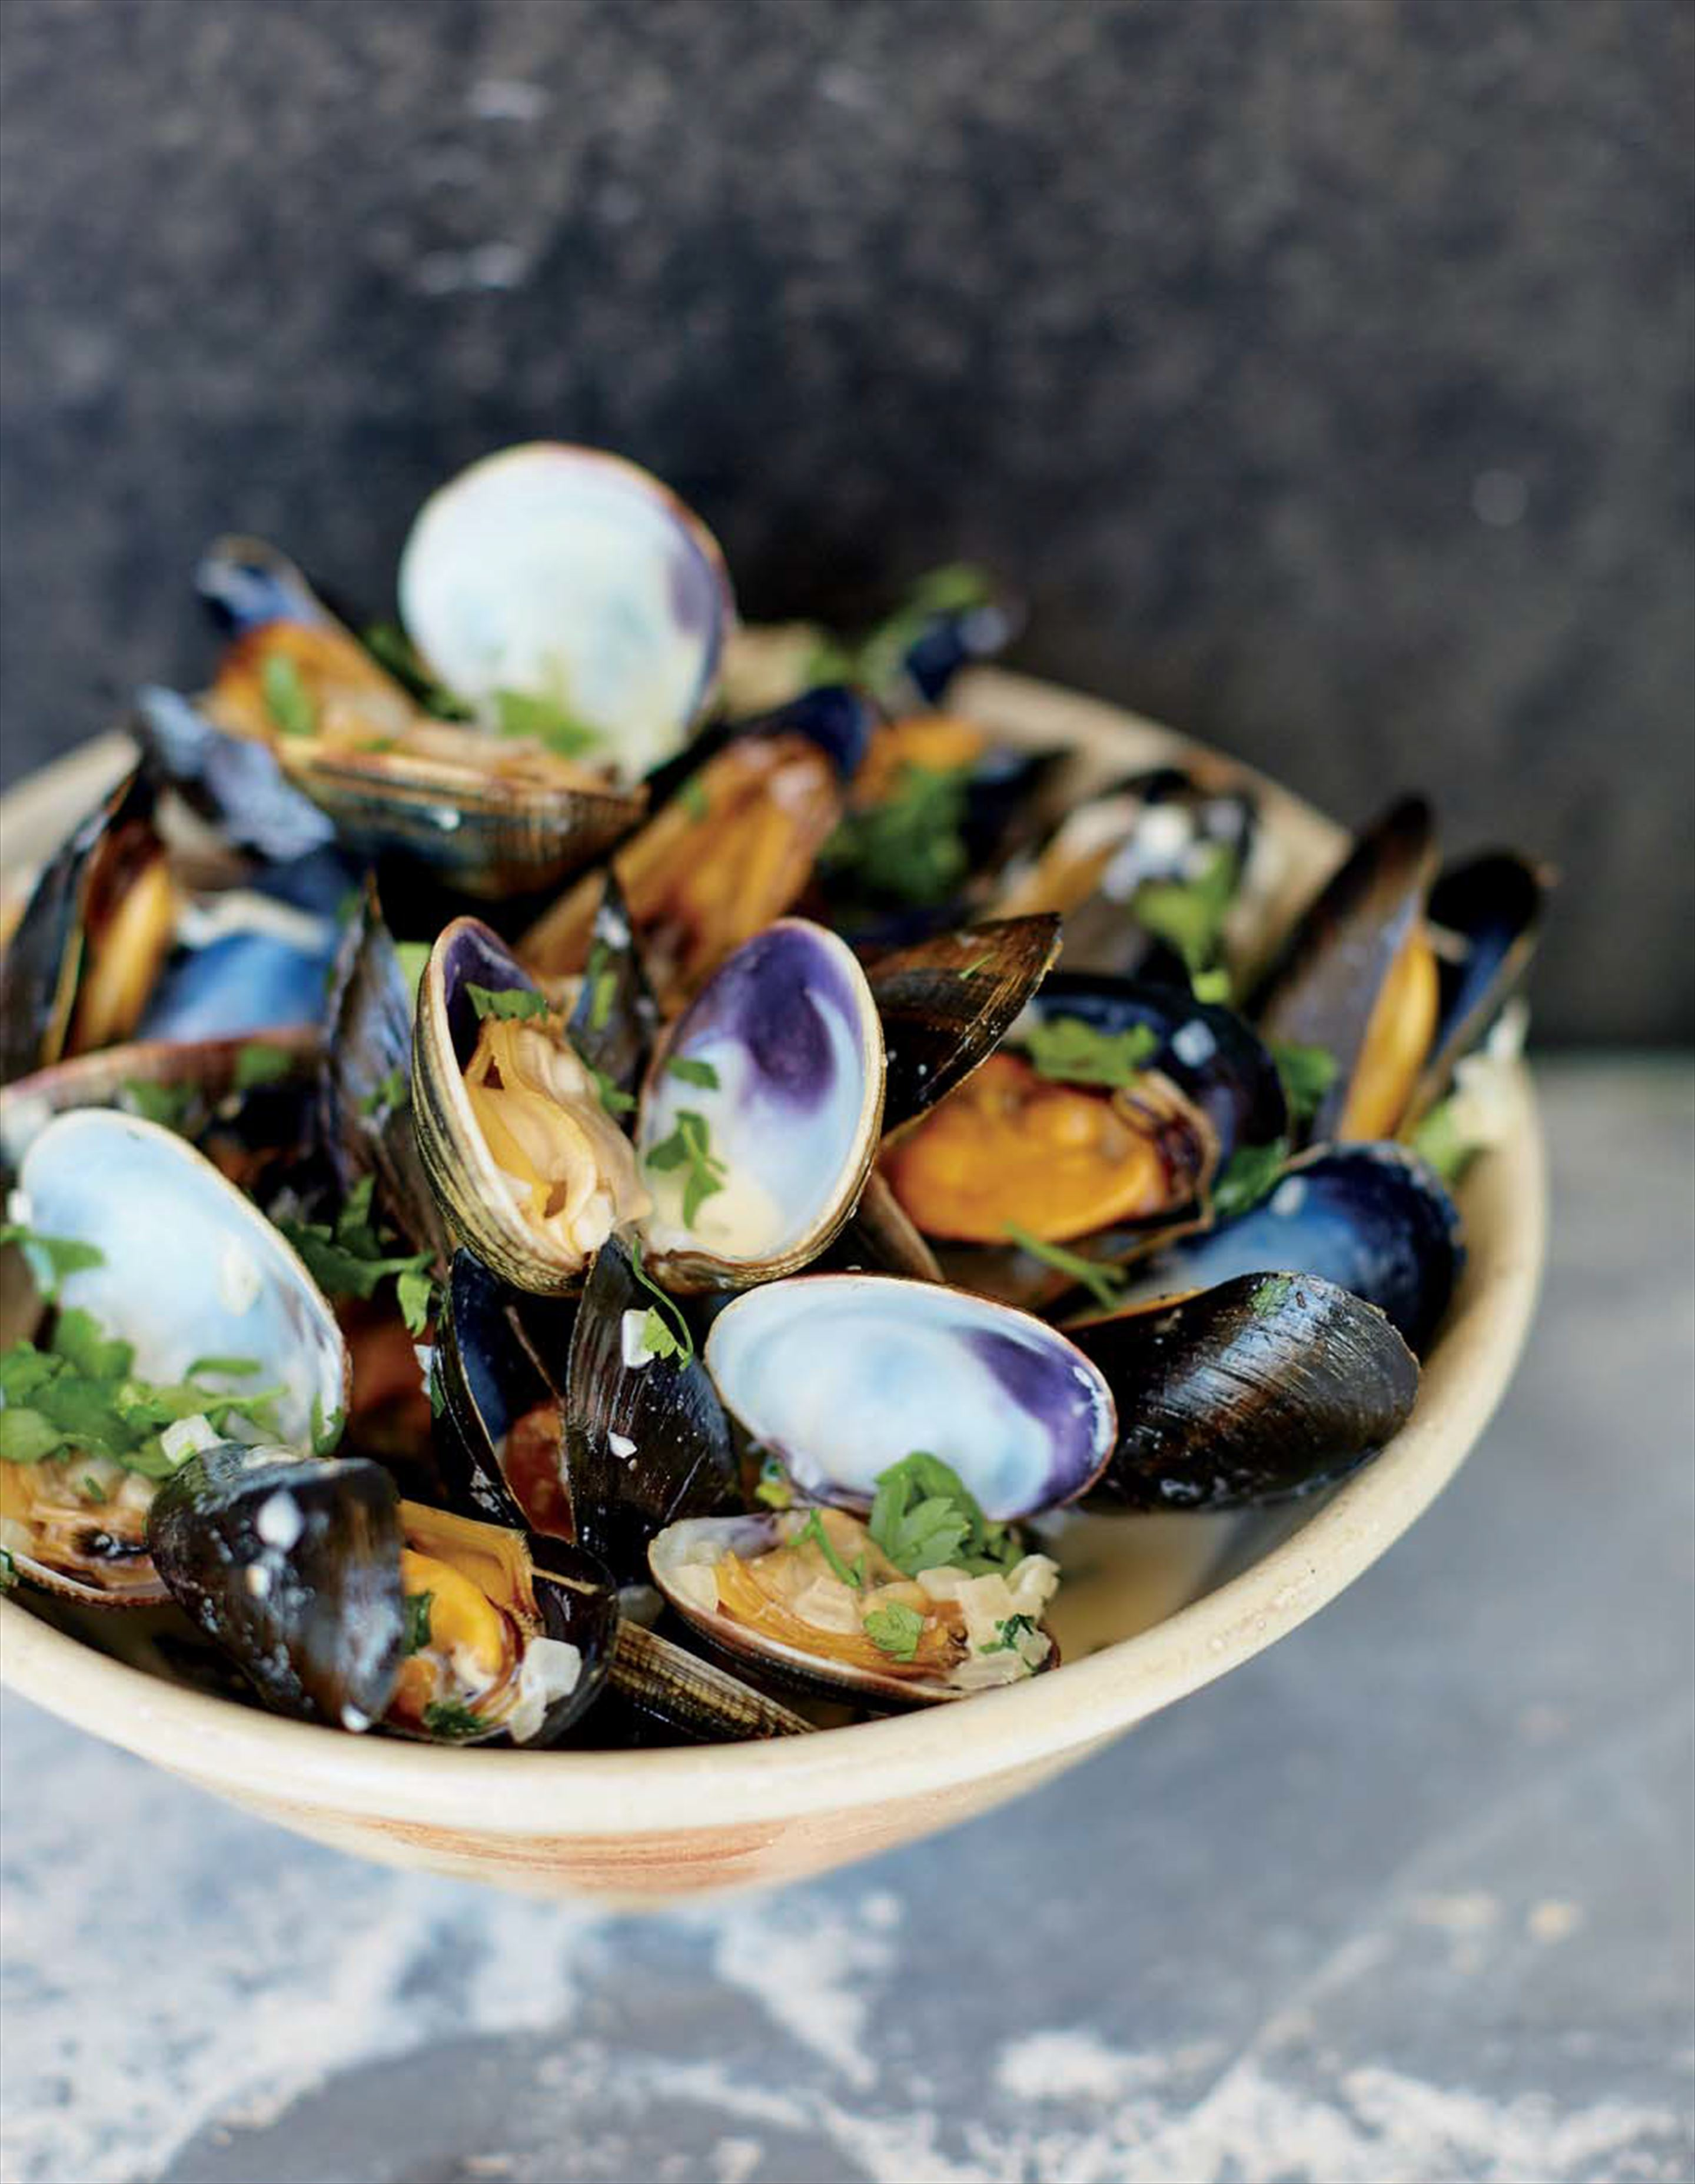 Mussels and clams with wine and cream